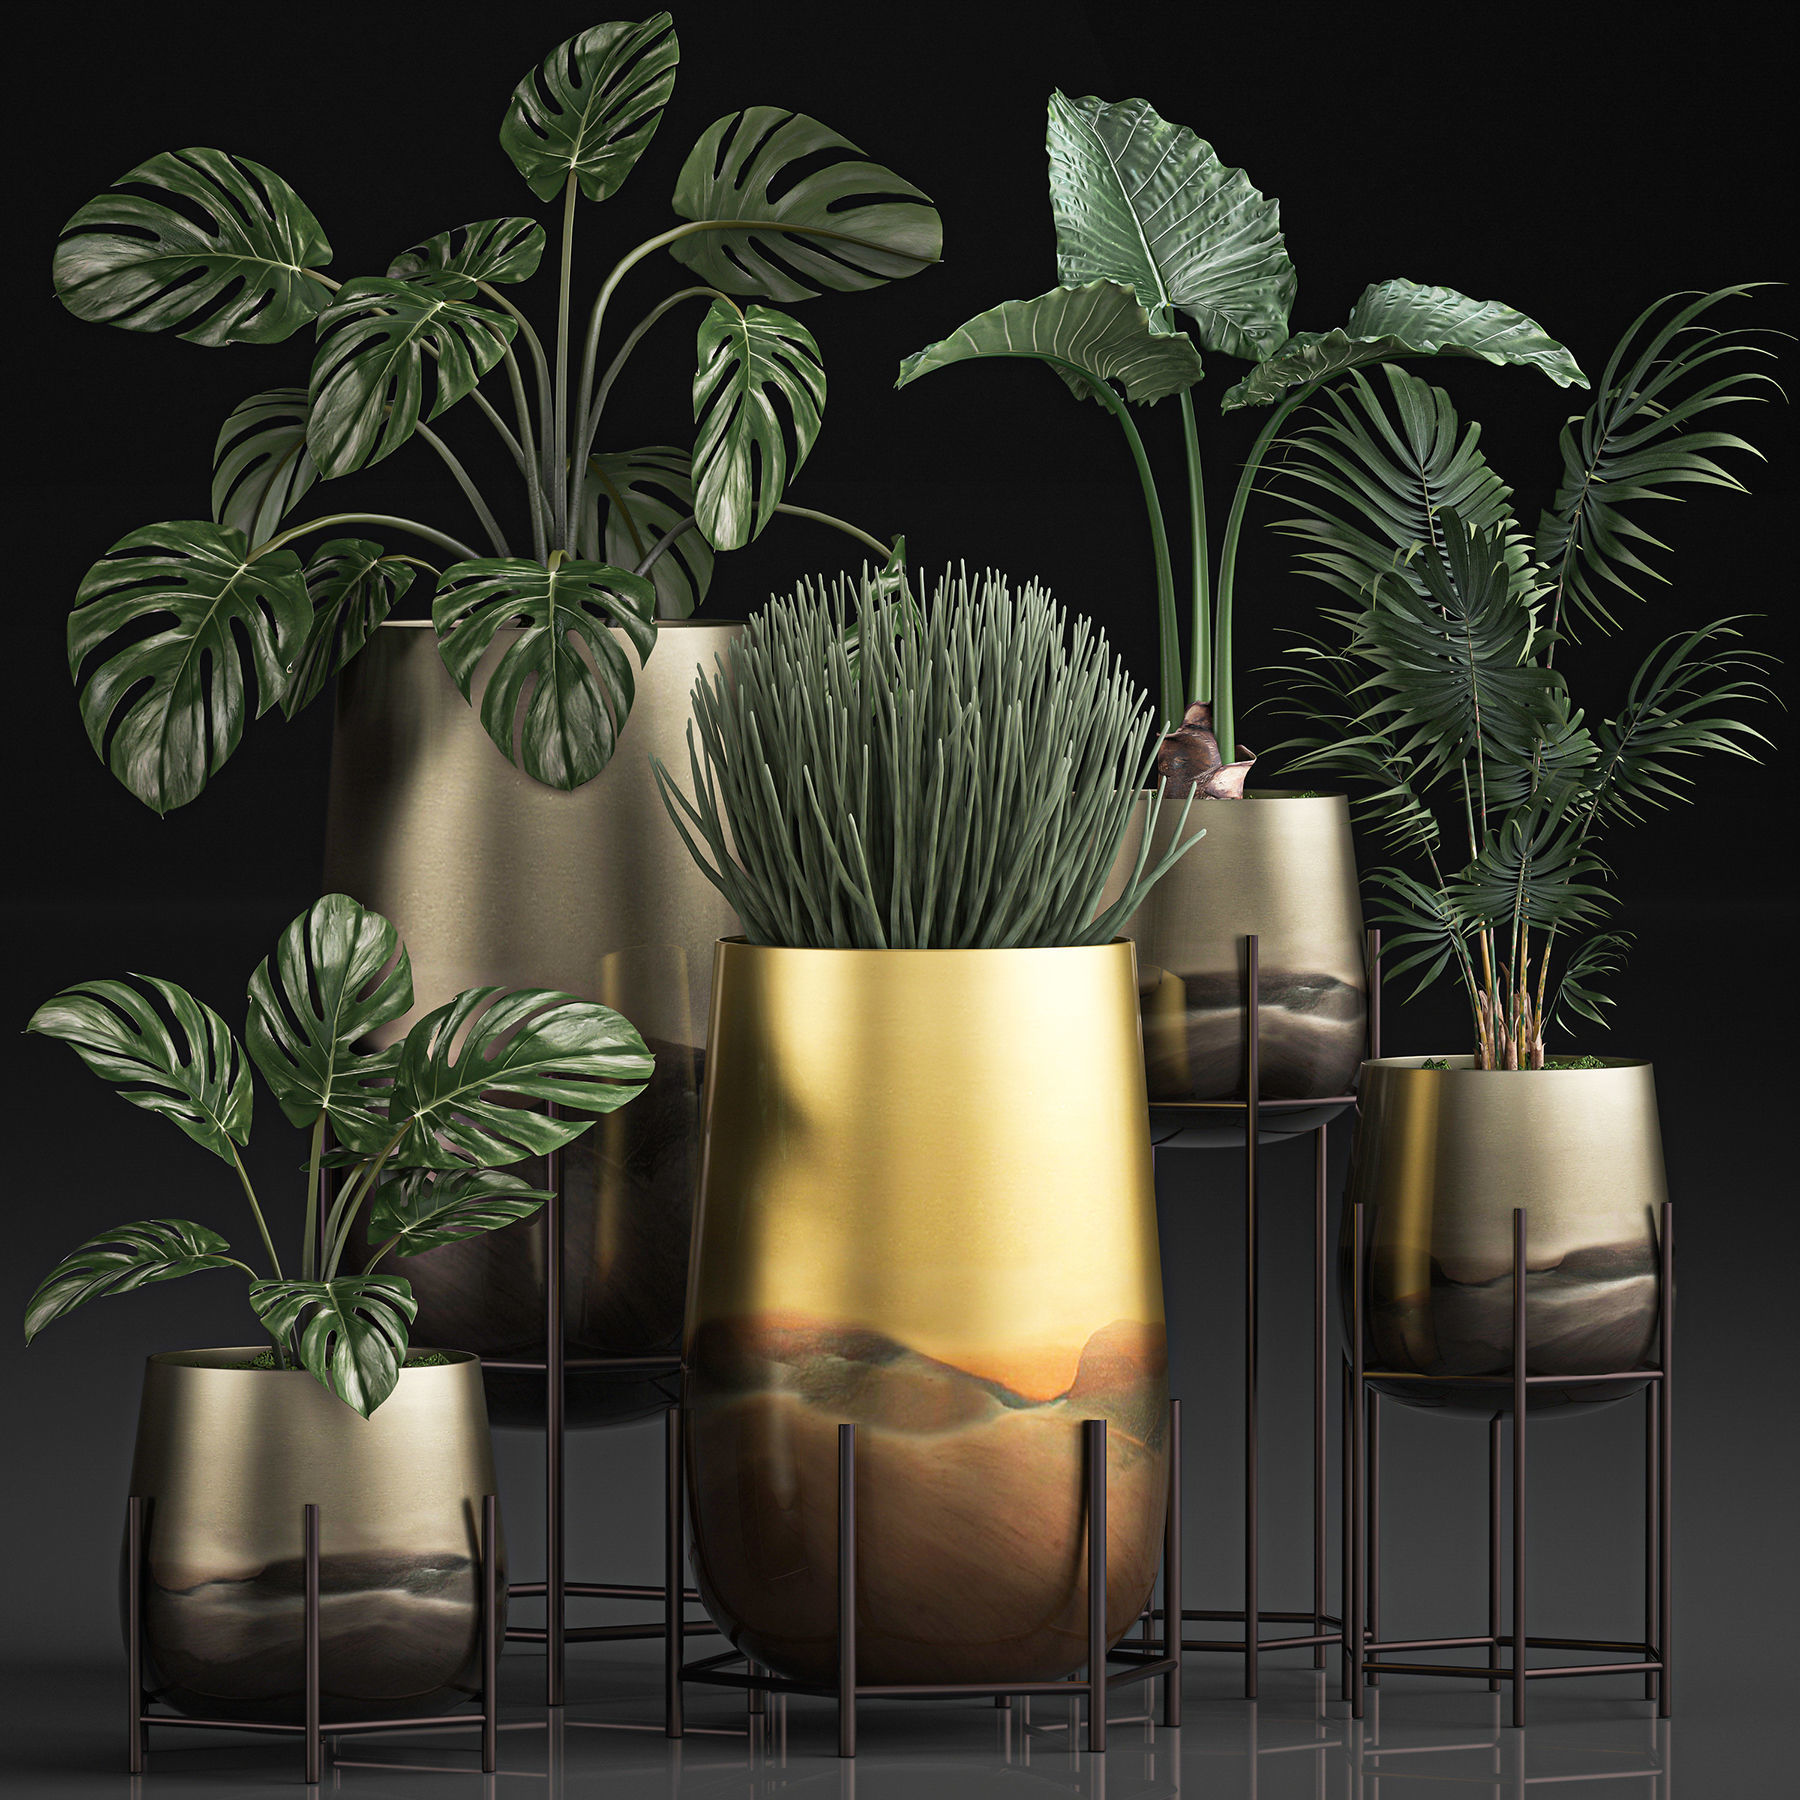 Decorative plants in Luxury Gold Pots for the interior 544